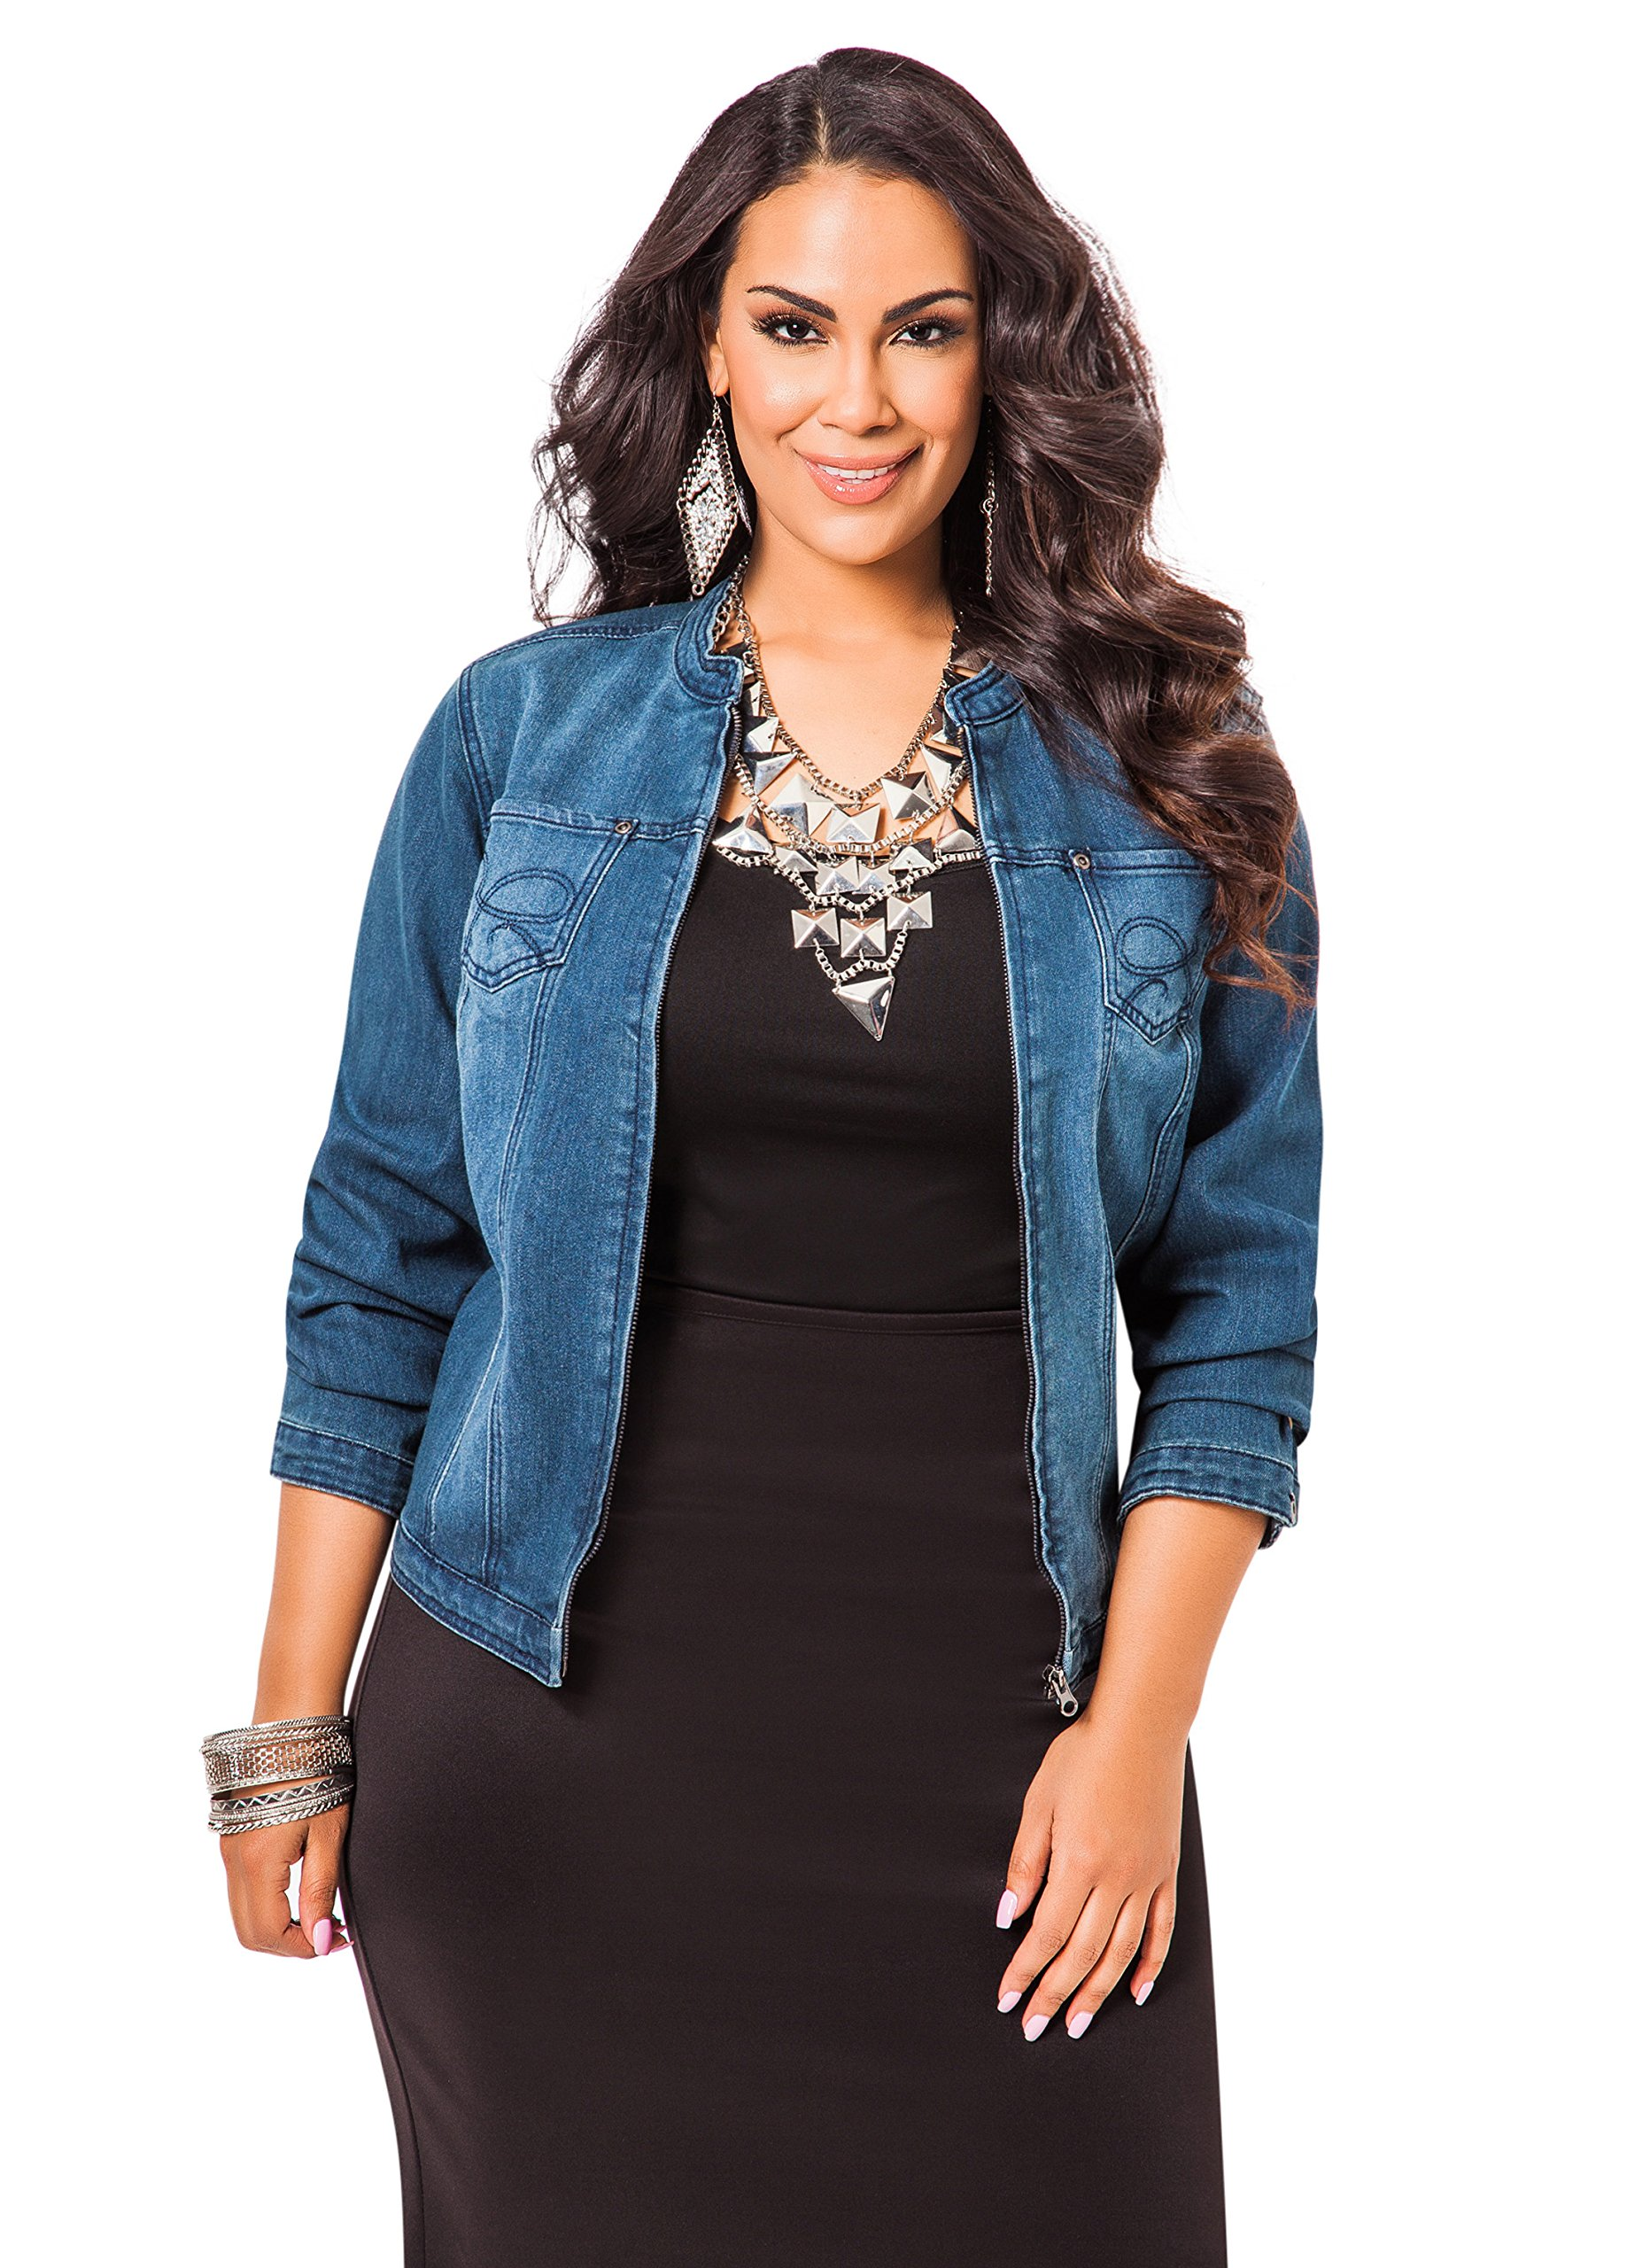 Plus Size Clothing Spring 2015 Trends - Denim!